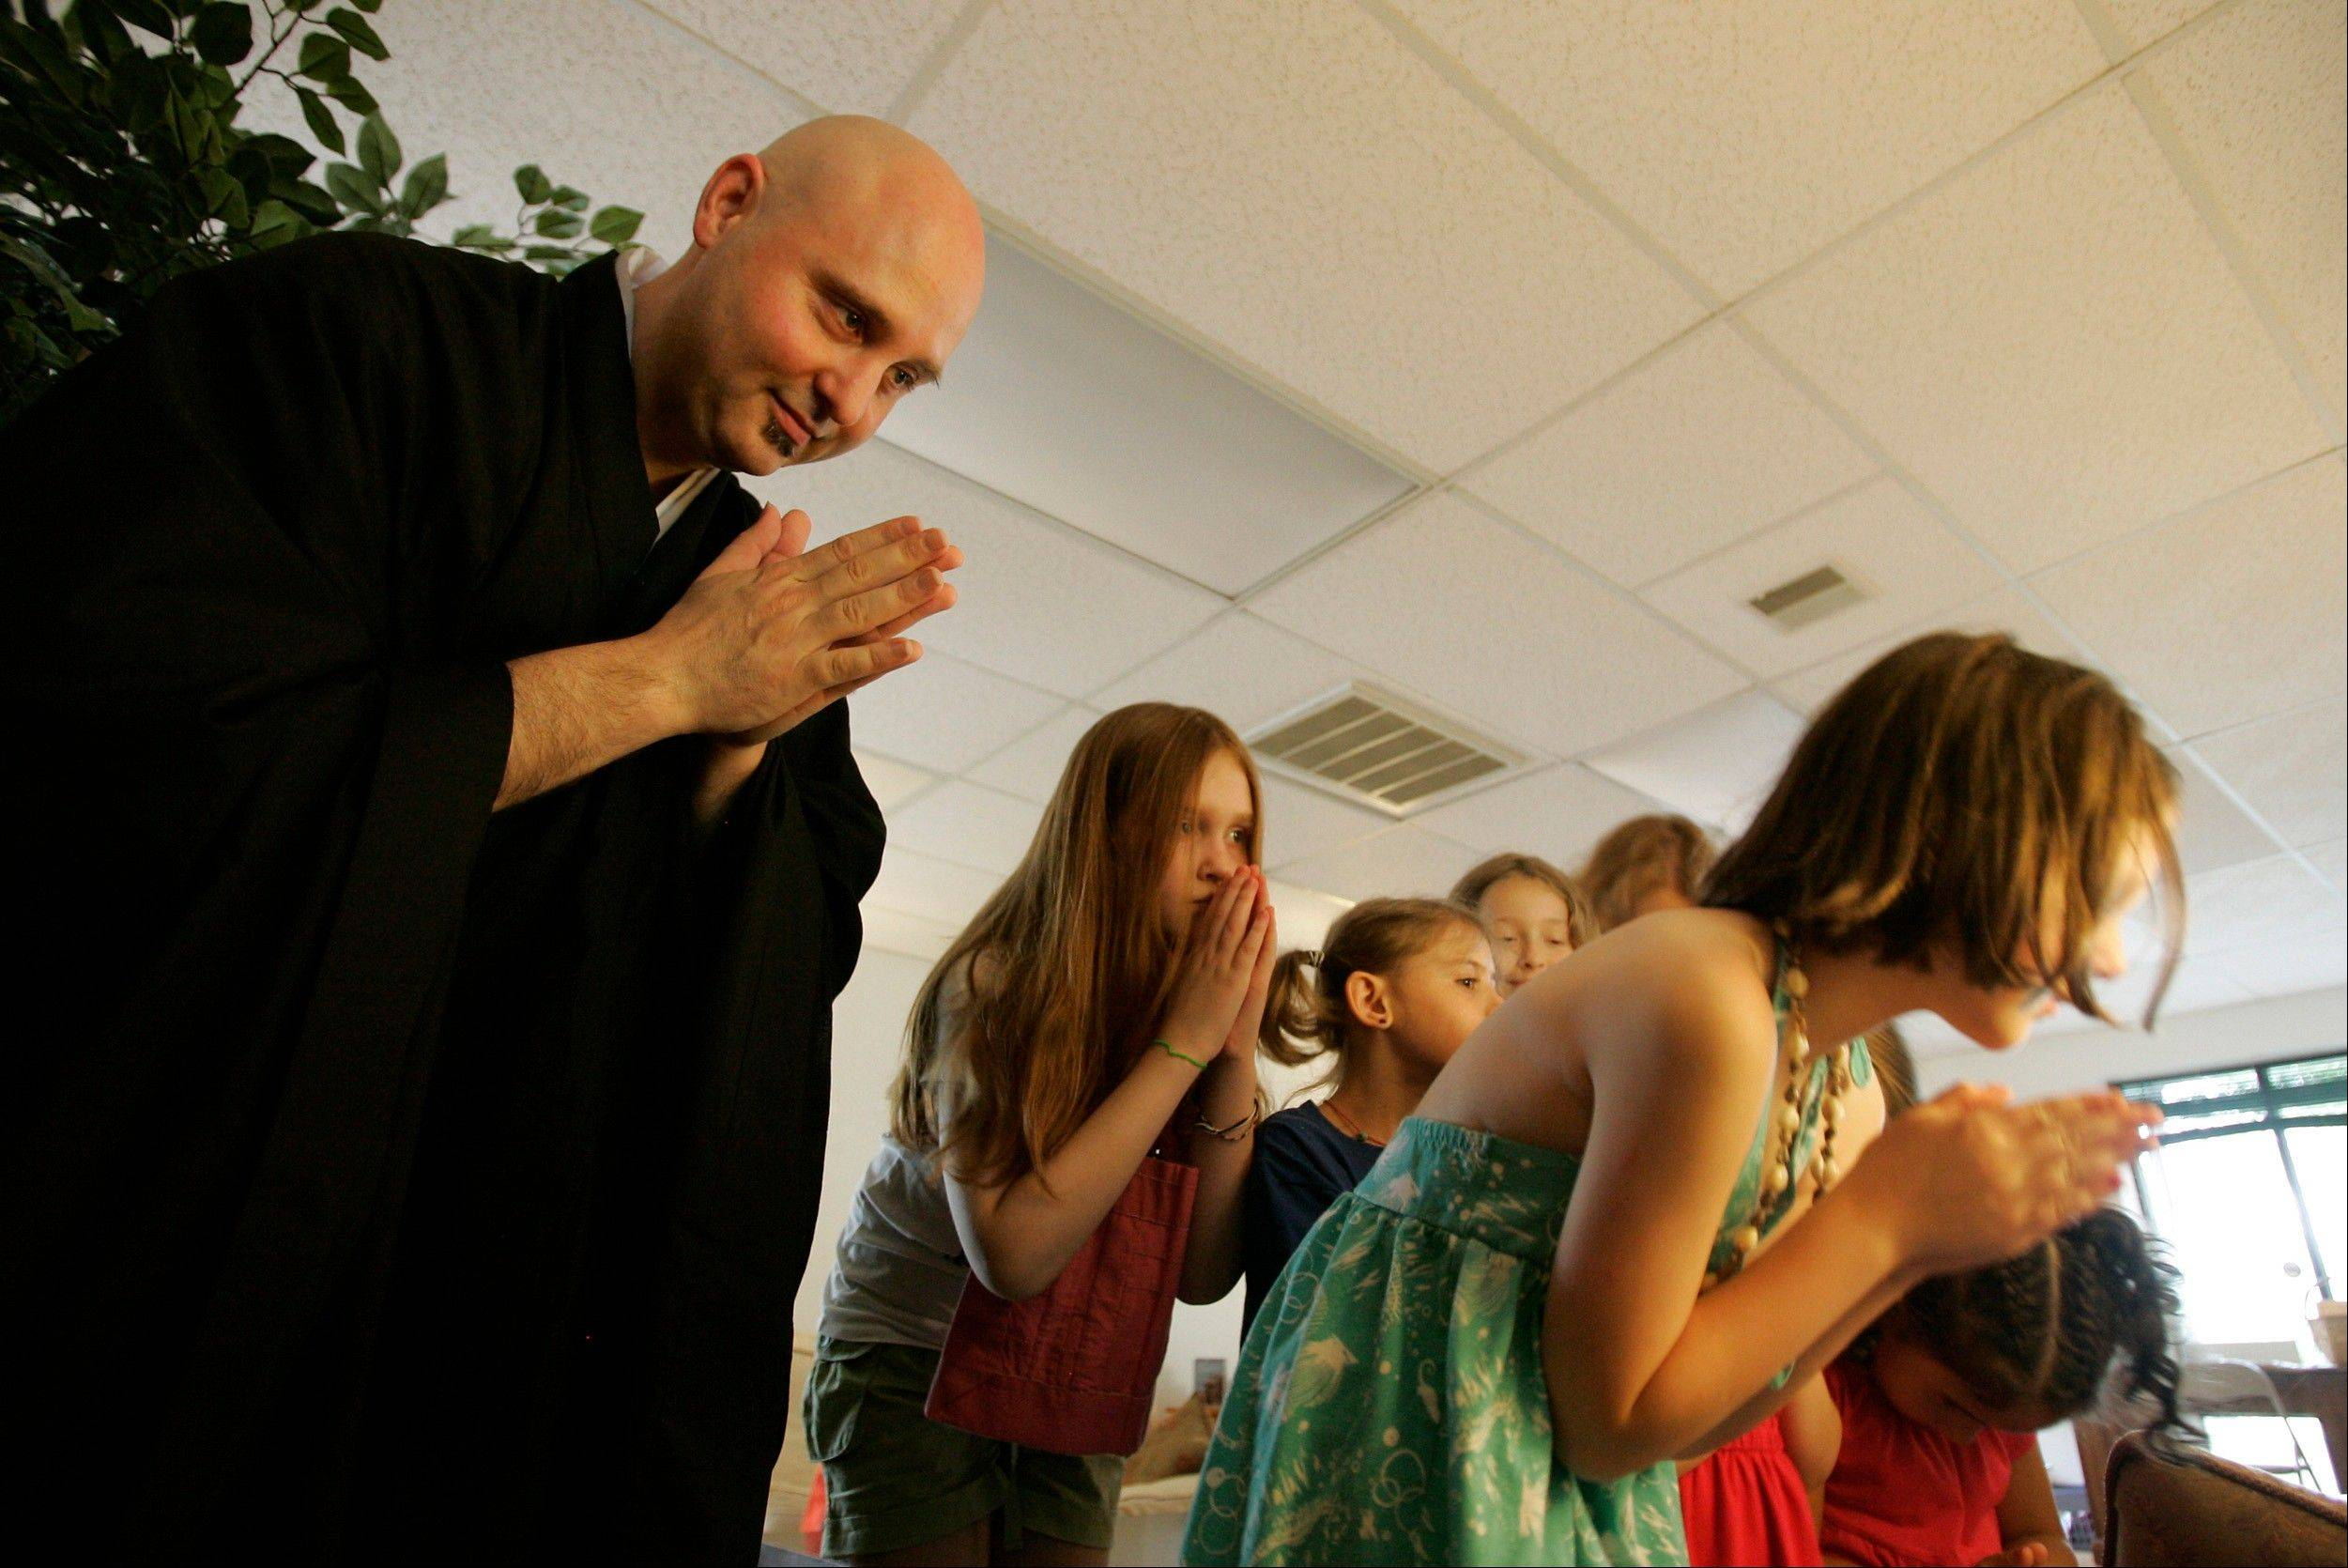 Rev. Jay Rinsen Weik bows with children after lighting an incense candle at the Toledo Zen Center in Holland, Ohio. The center has created a Sunday school and other programs to be especially welcoming to families.